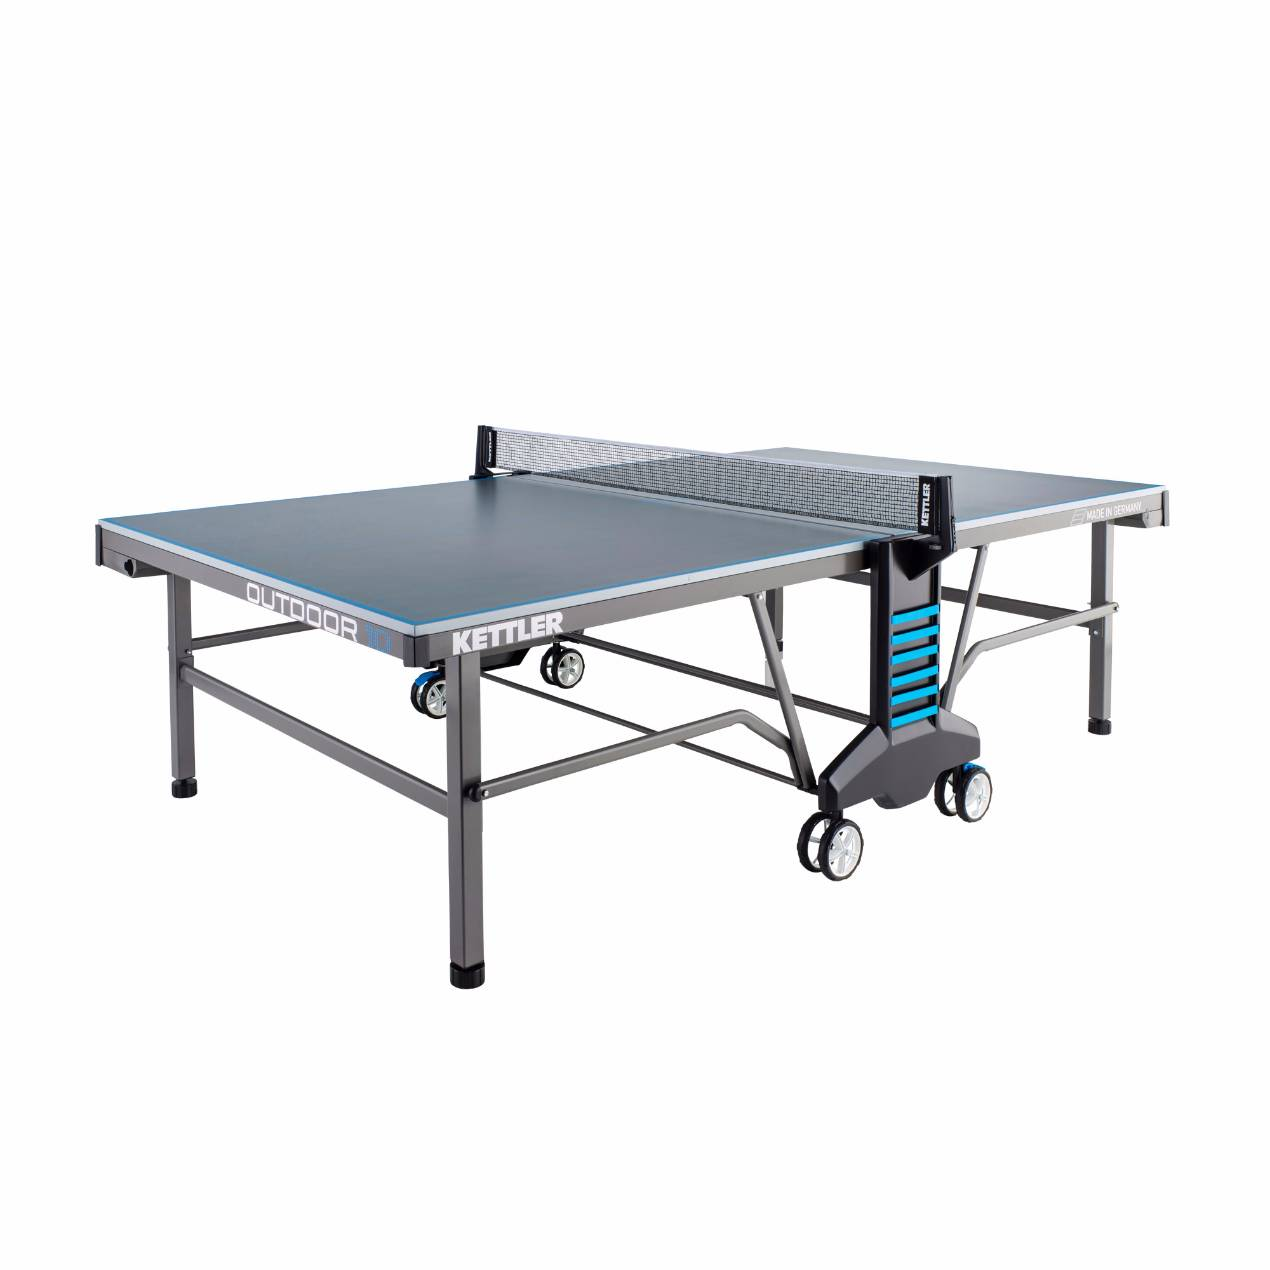 Kettler Fitness Kettler Outdoor 10 Leisure Products Table Tennis Ping Pong